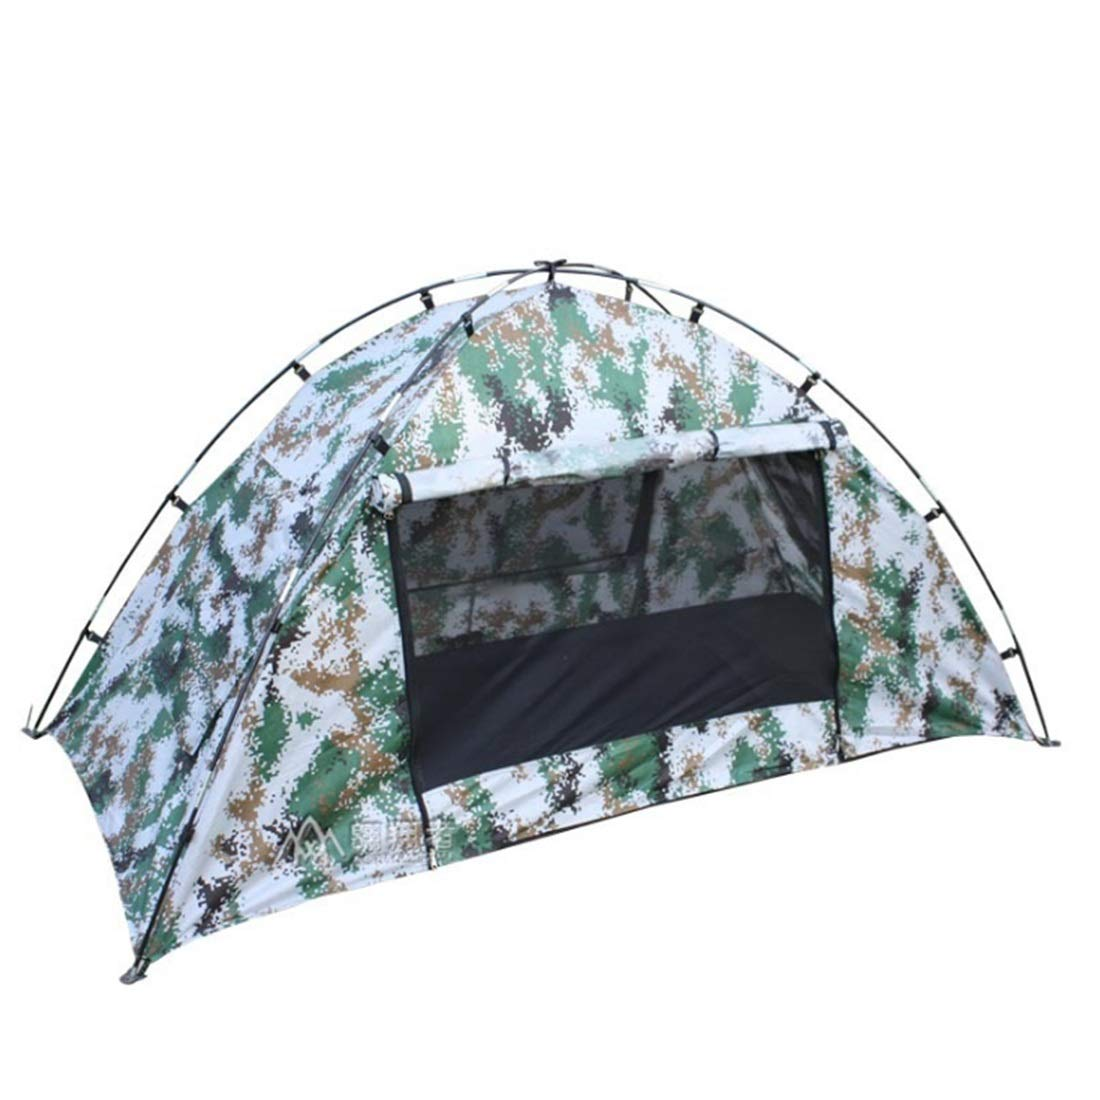 WEATLY 1 Person Camouflage Zelt für Wildes Camping